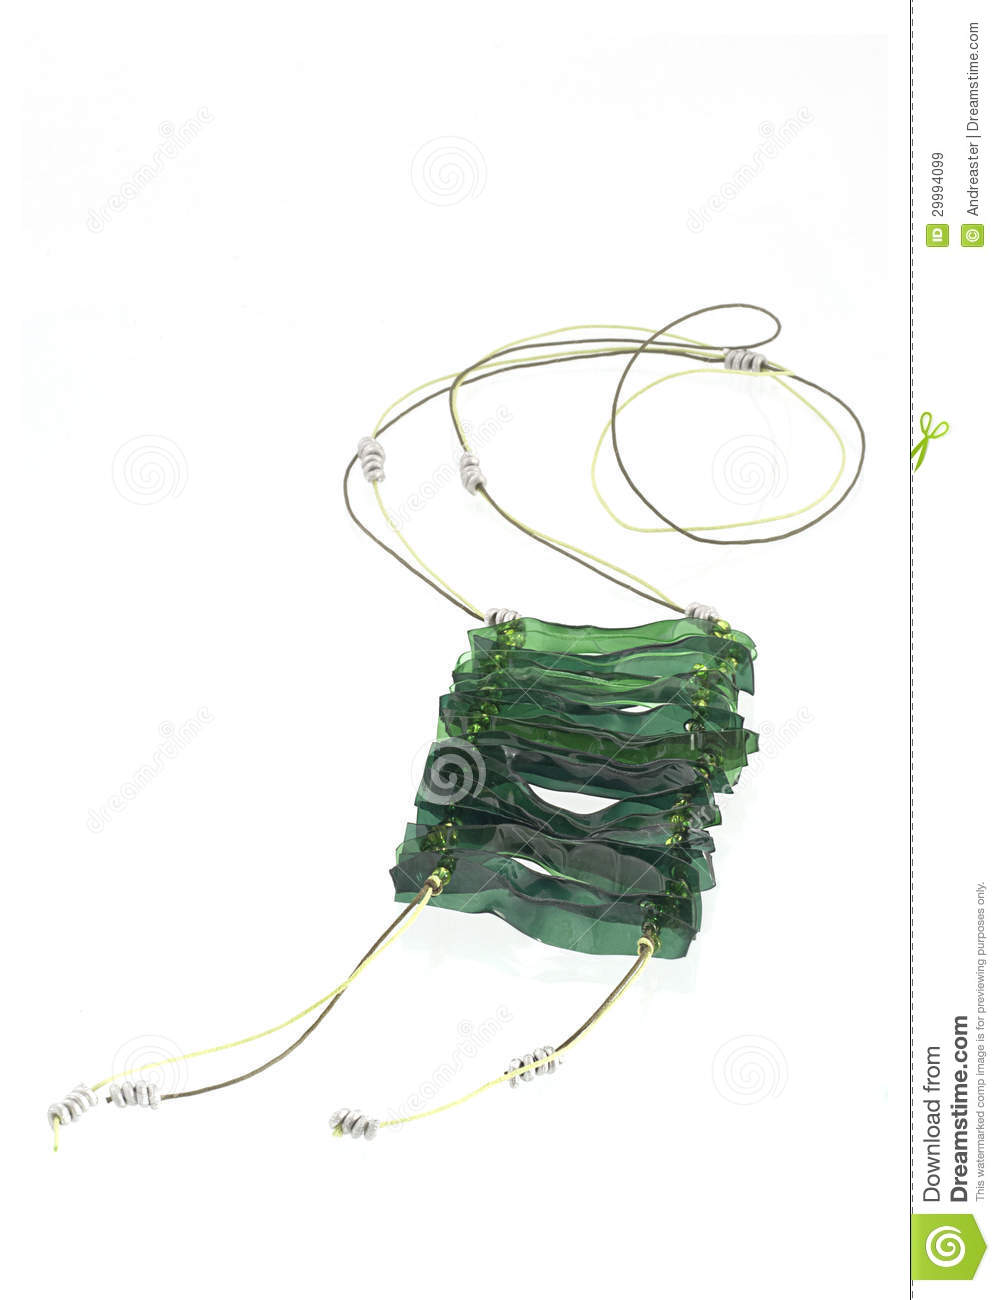 Ecojewelry Necklace From Recycled Plastic Bottles Stock